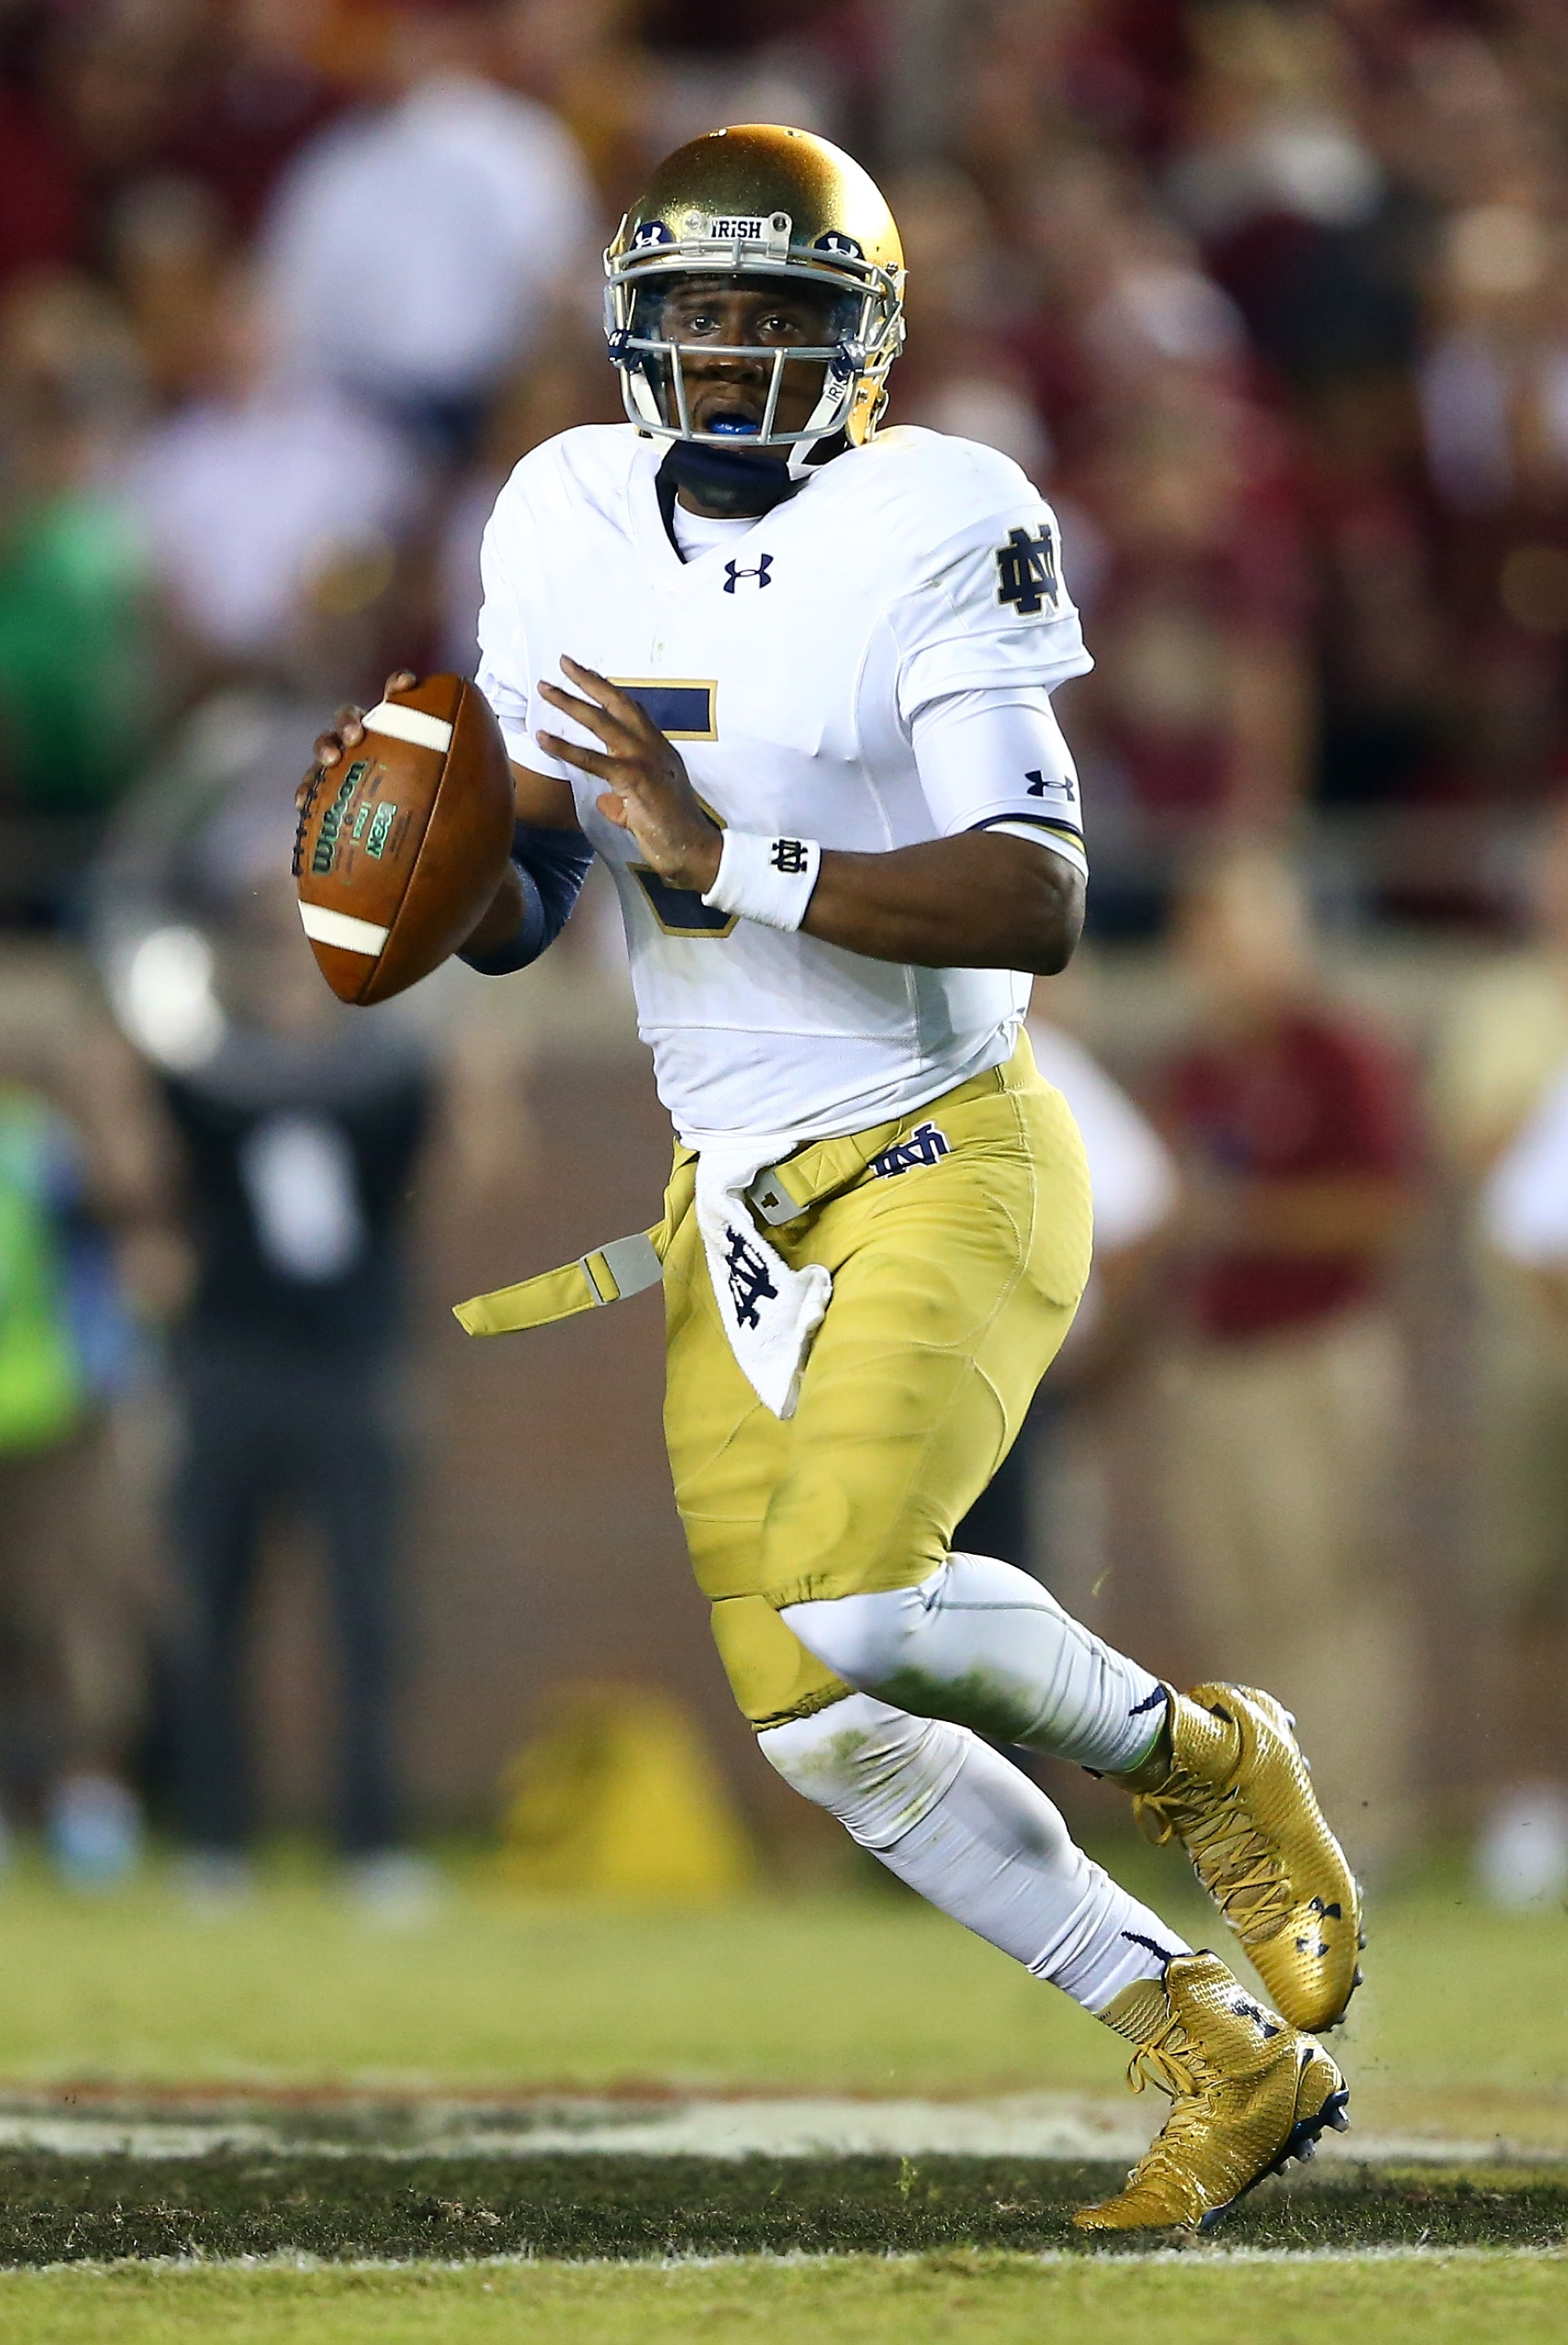 TALLAHASSEE, FL - OCTOBER 18:  Everett Golson #5 of the Notre Dame Fighting Irish drops back to pass against the Florida State Seminoles during their game at Doak Campbell Stadium on October 18, 2014 in Tallahassee, Florida.  (Photo by Streeter Lecka/Getty Images)